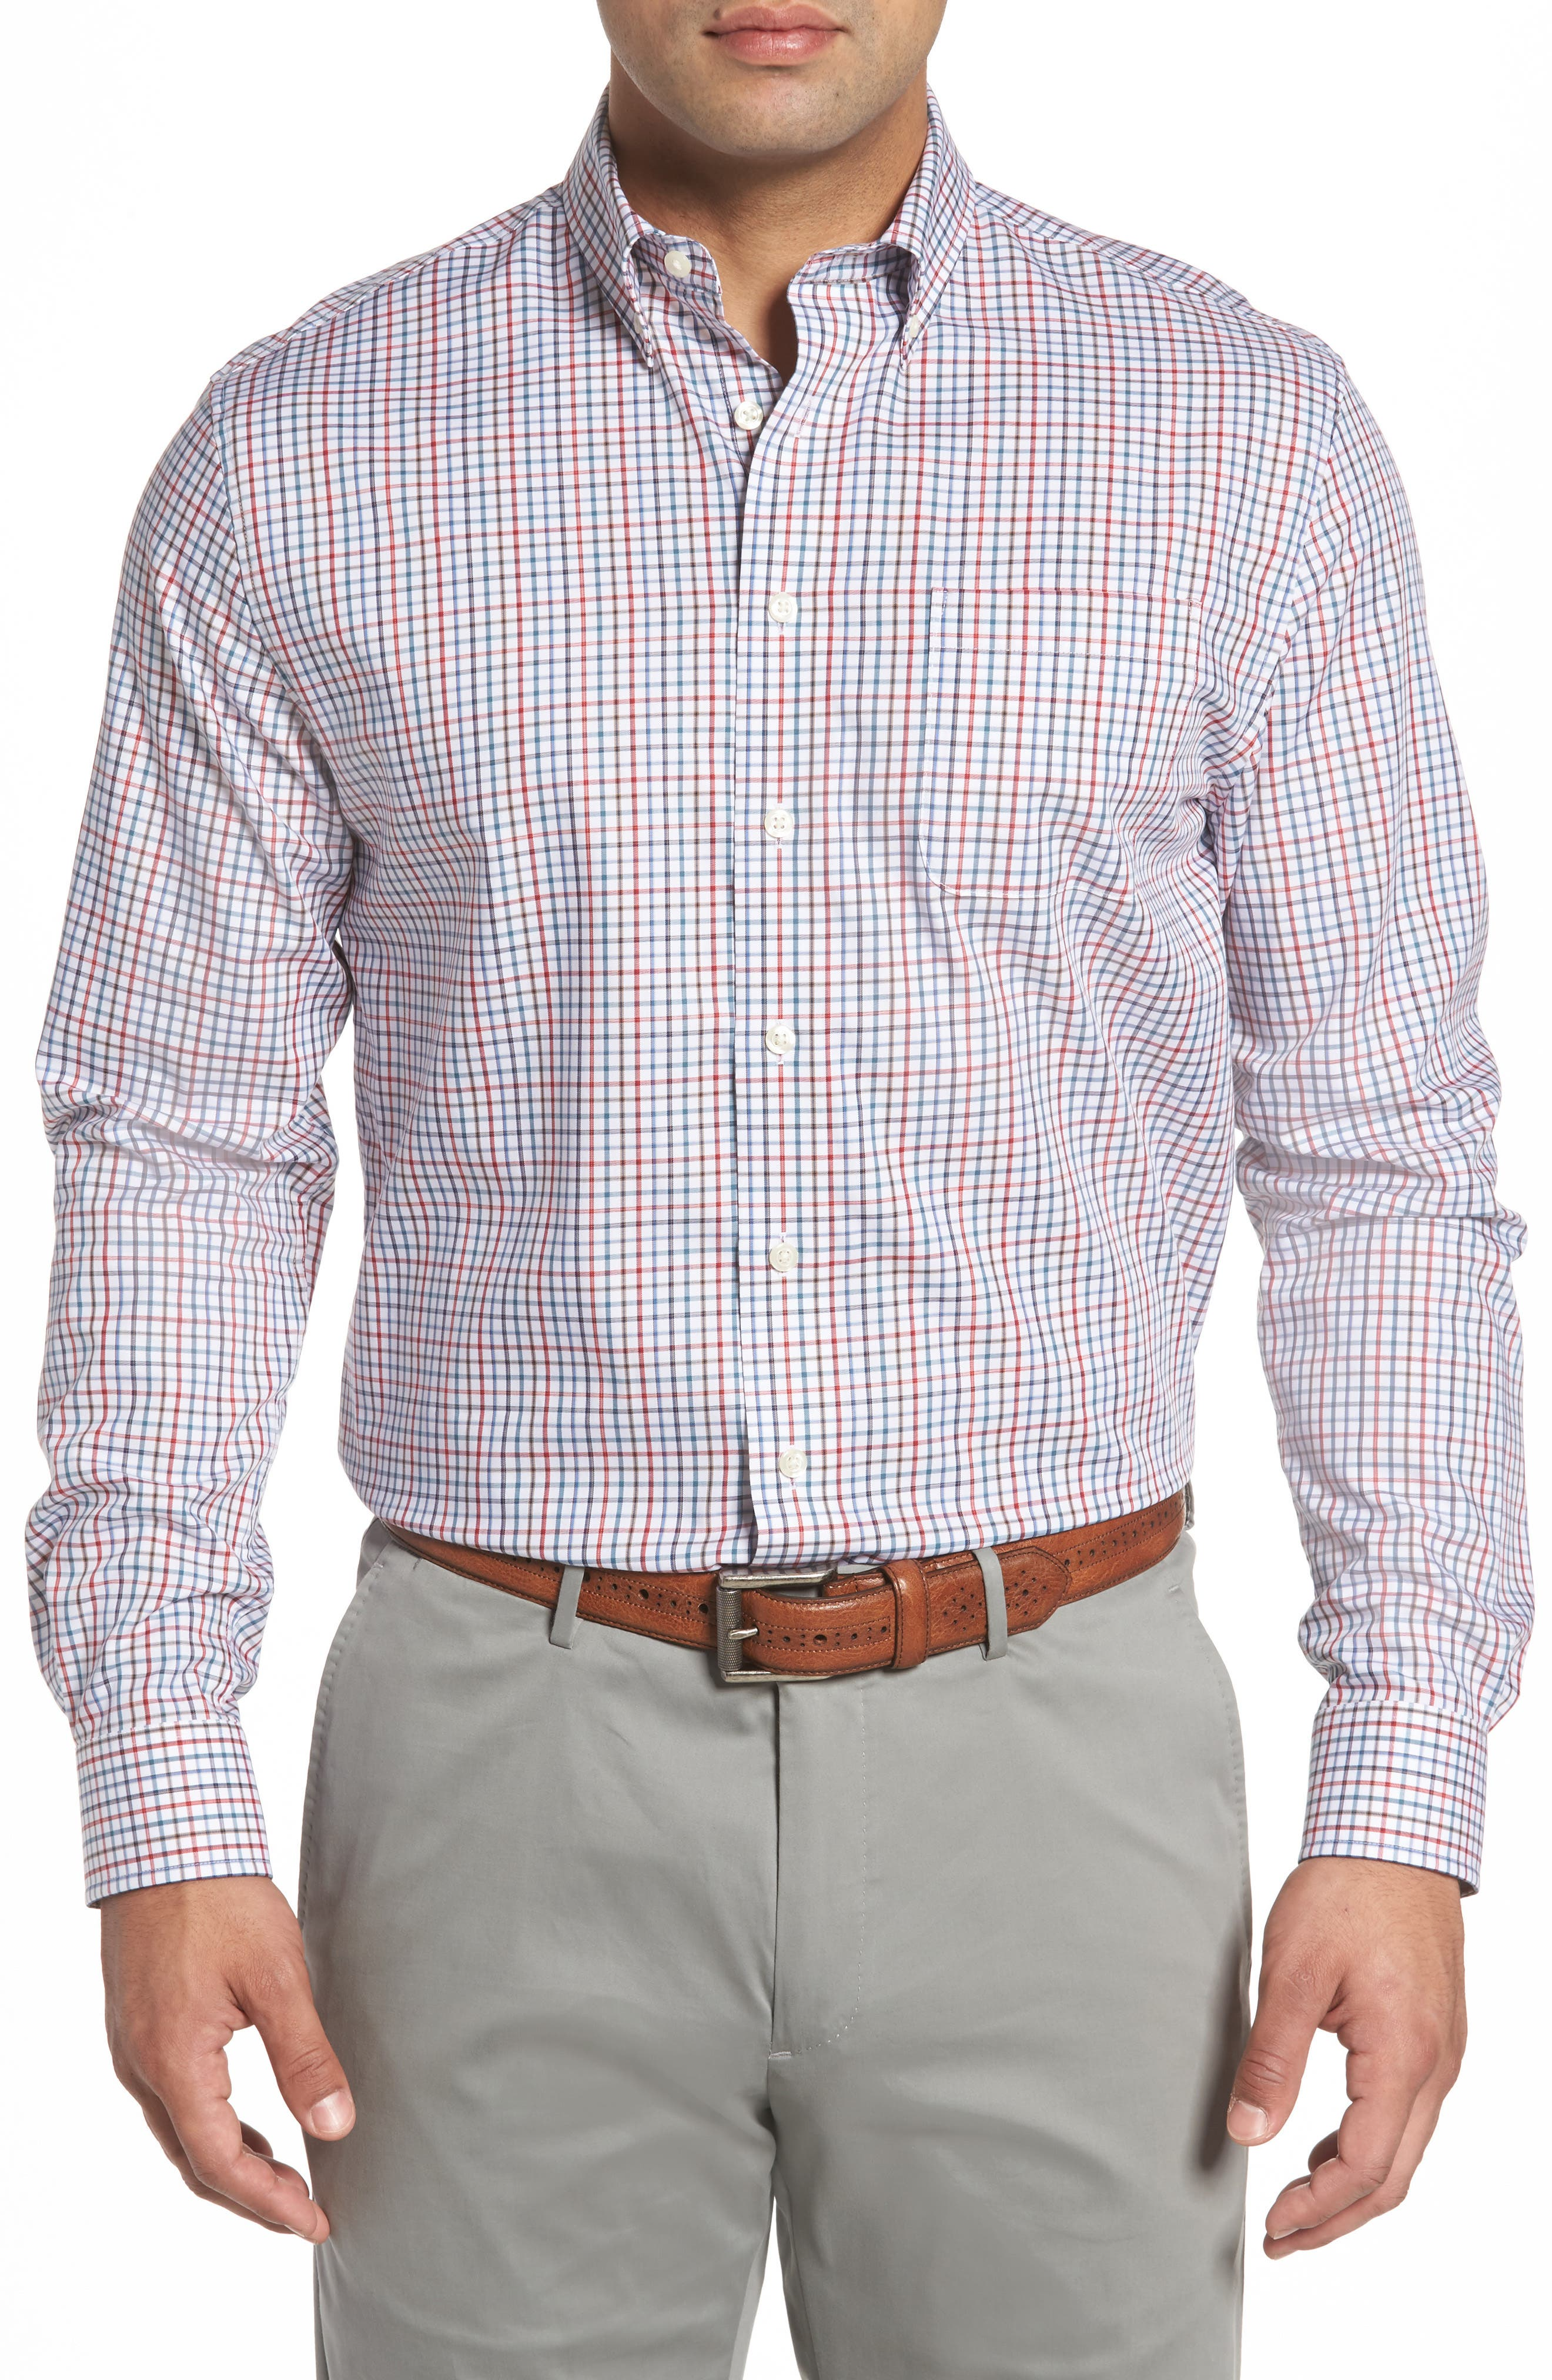 Snyder Classic Fit Check Sport Shirt,                         Main,                         color, Phoenix